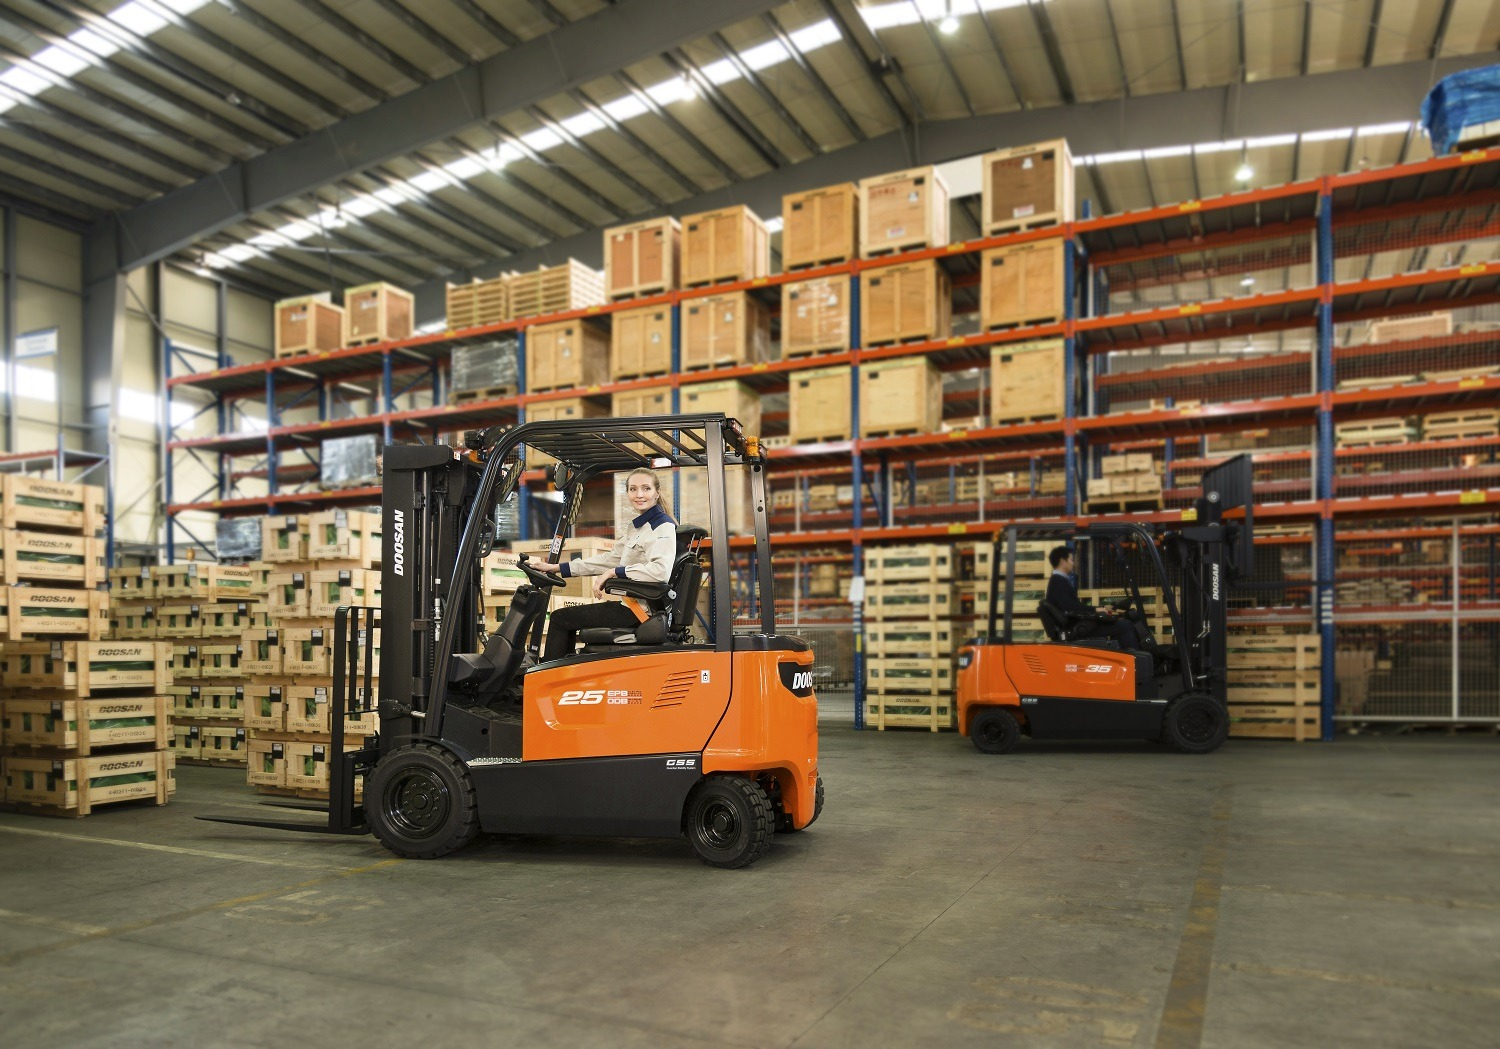 Doosan 2.5 tonne electric forklift with Guardian Stability System